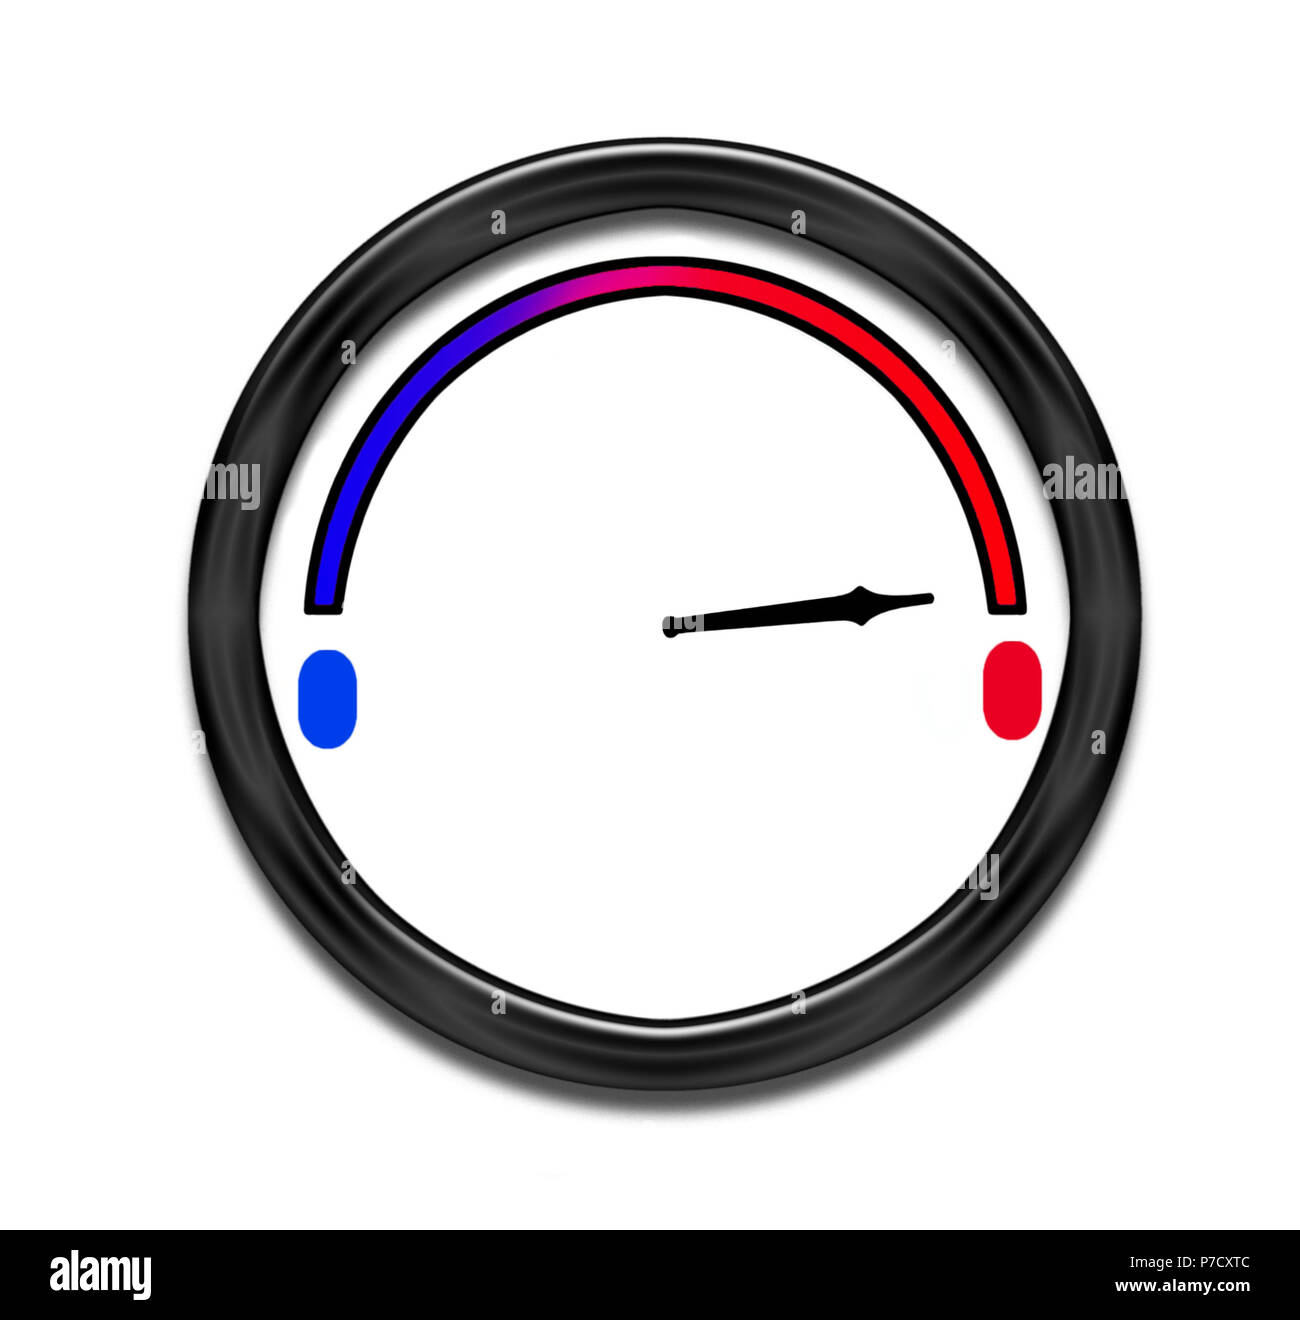 Temperature rising - dial. Summer heatwave etc. - Stock Image